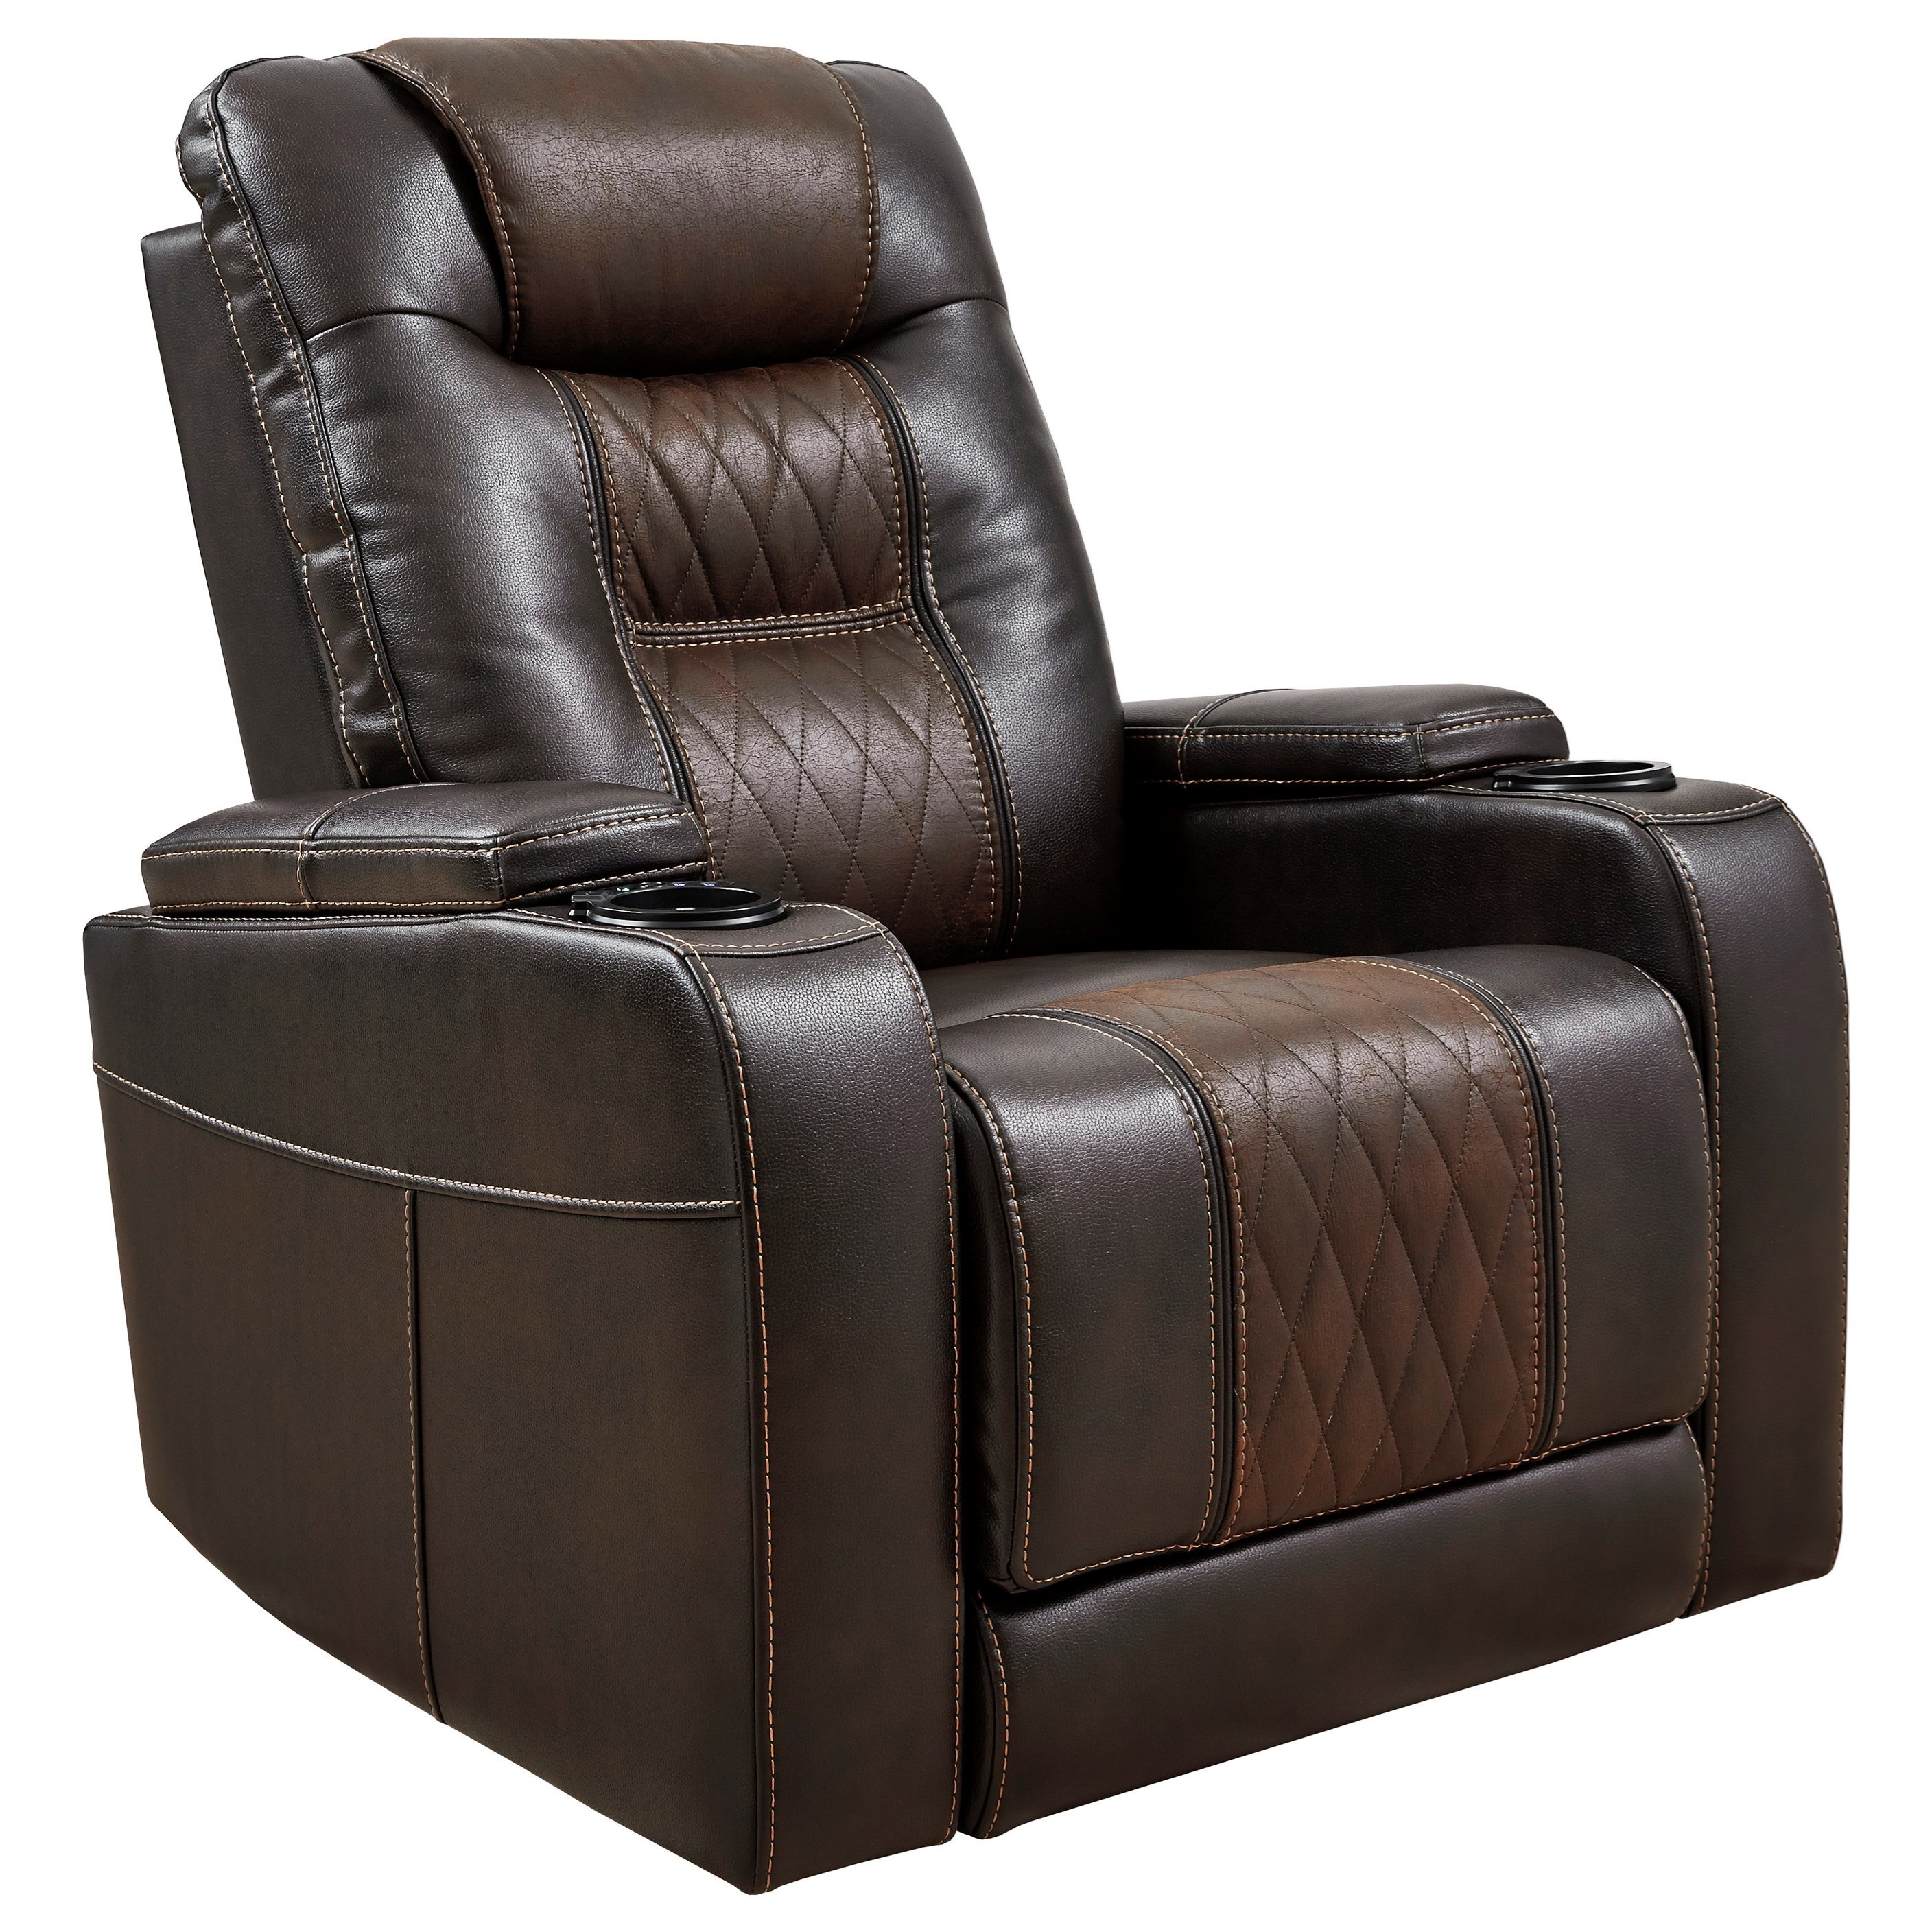 Composer Power Recliner by Ashley (Signature Design) at Johnny Janosik